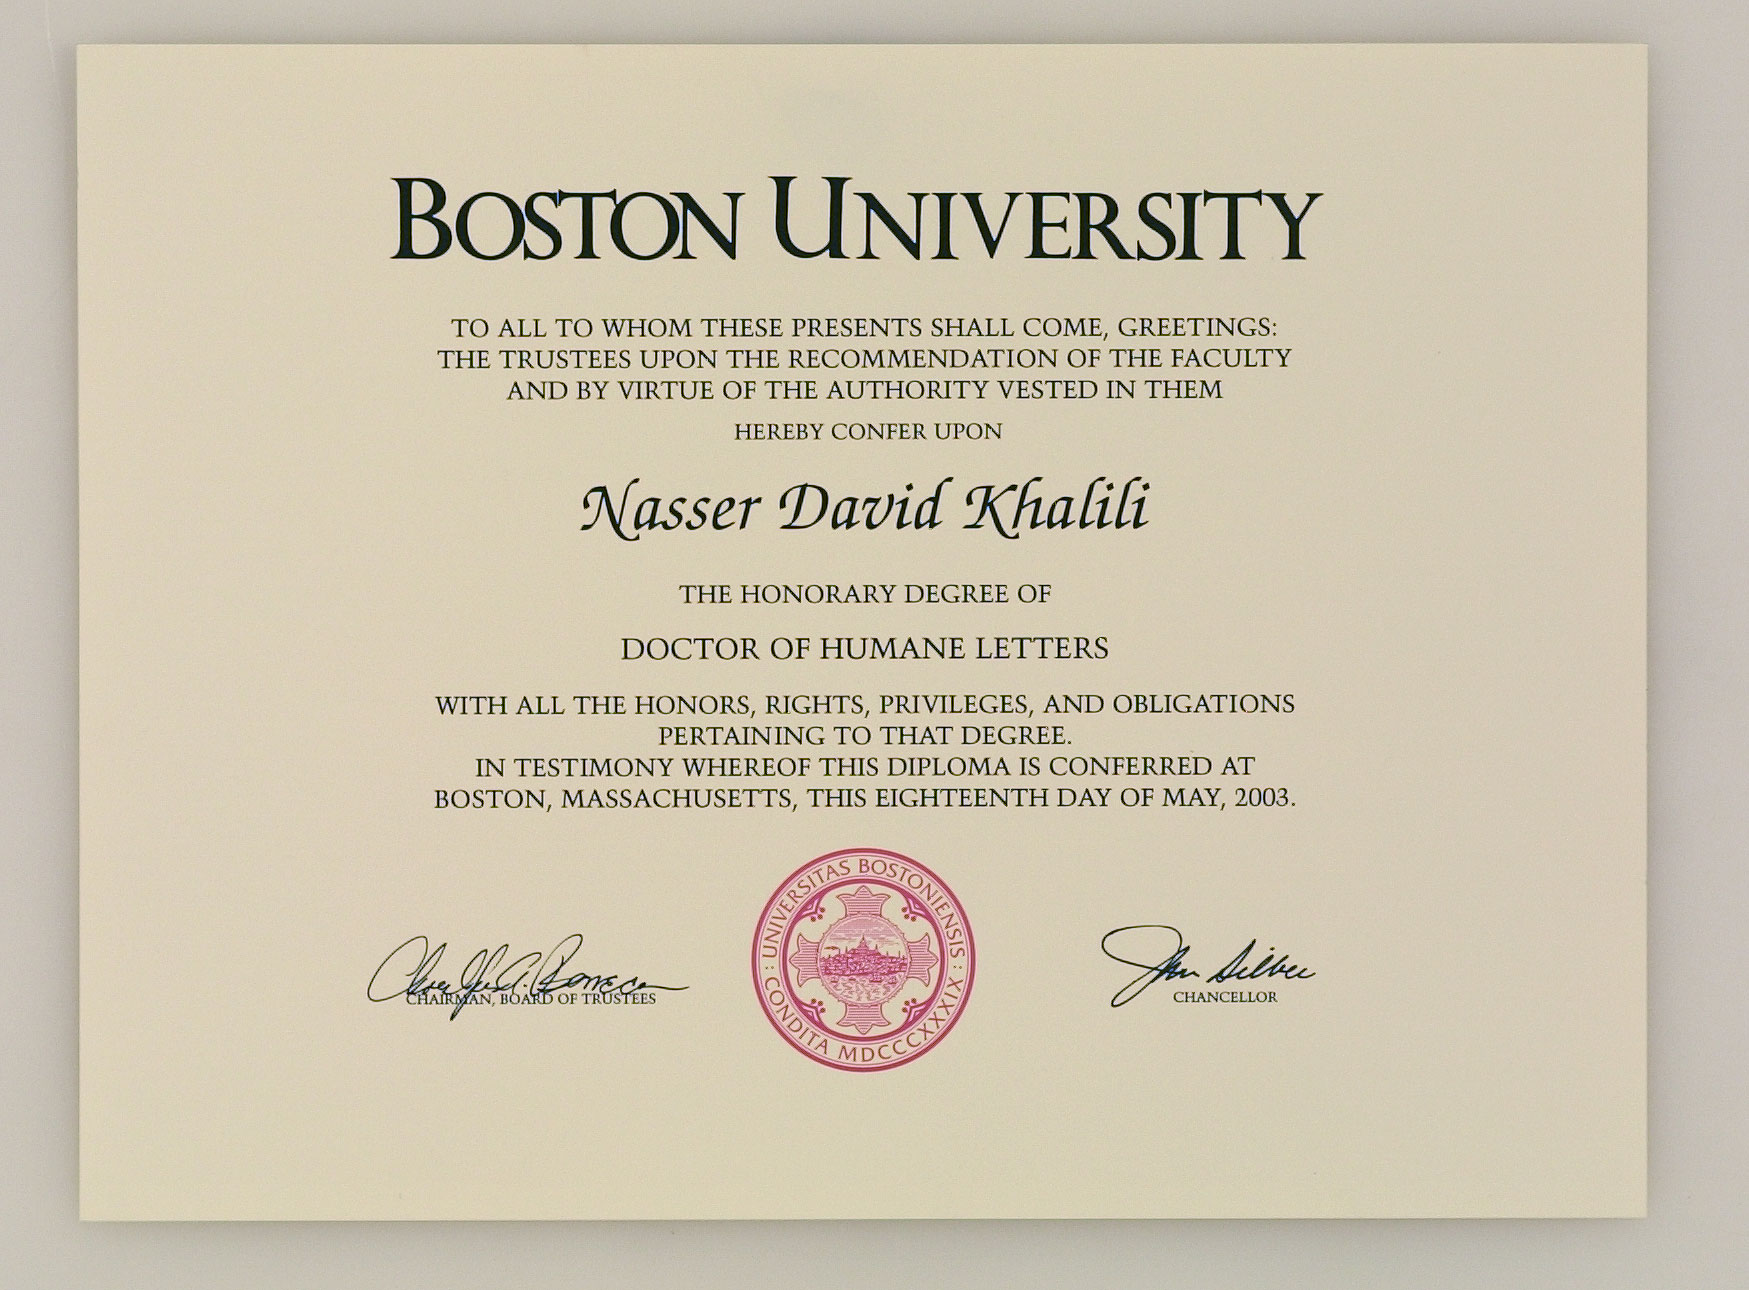 Honorary Degree Doctor of Humane Letters, Boston University